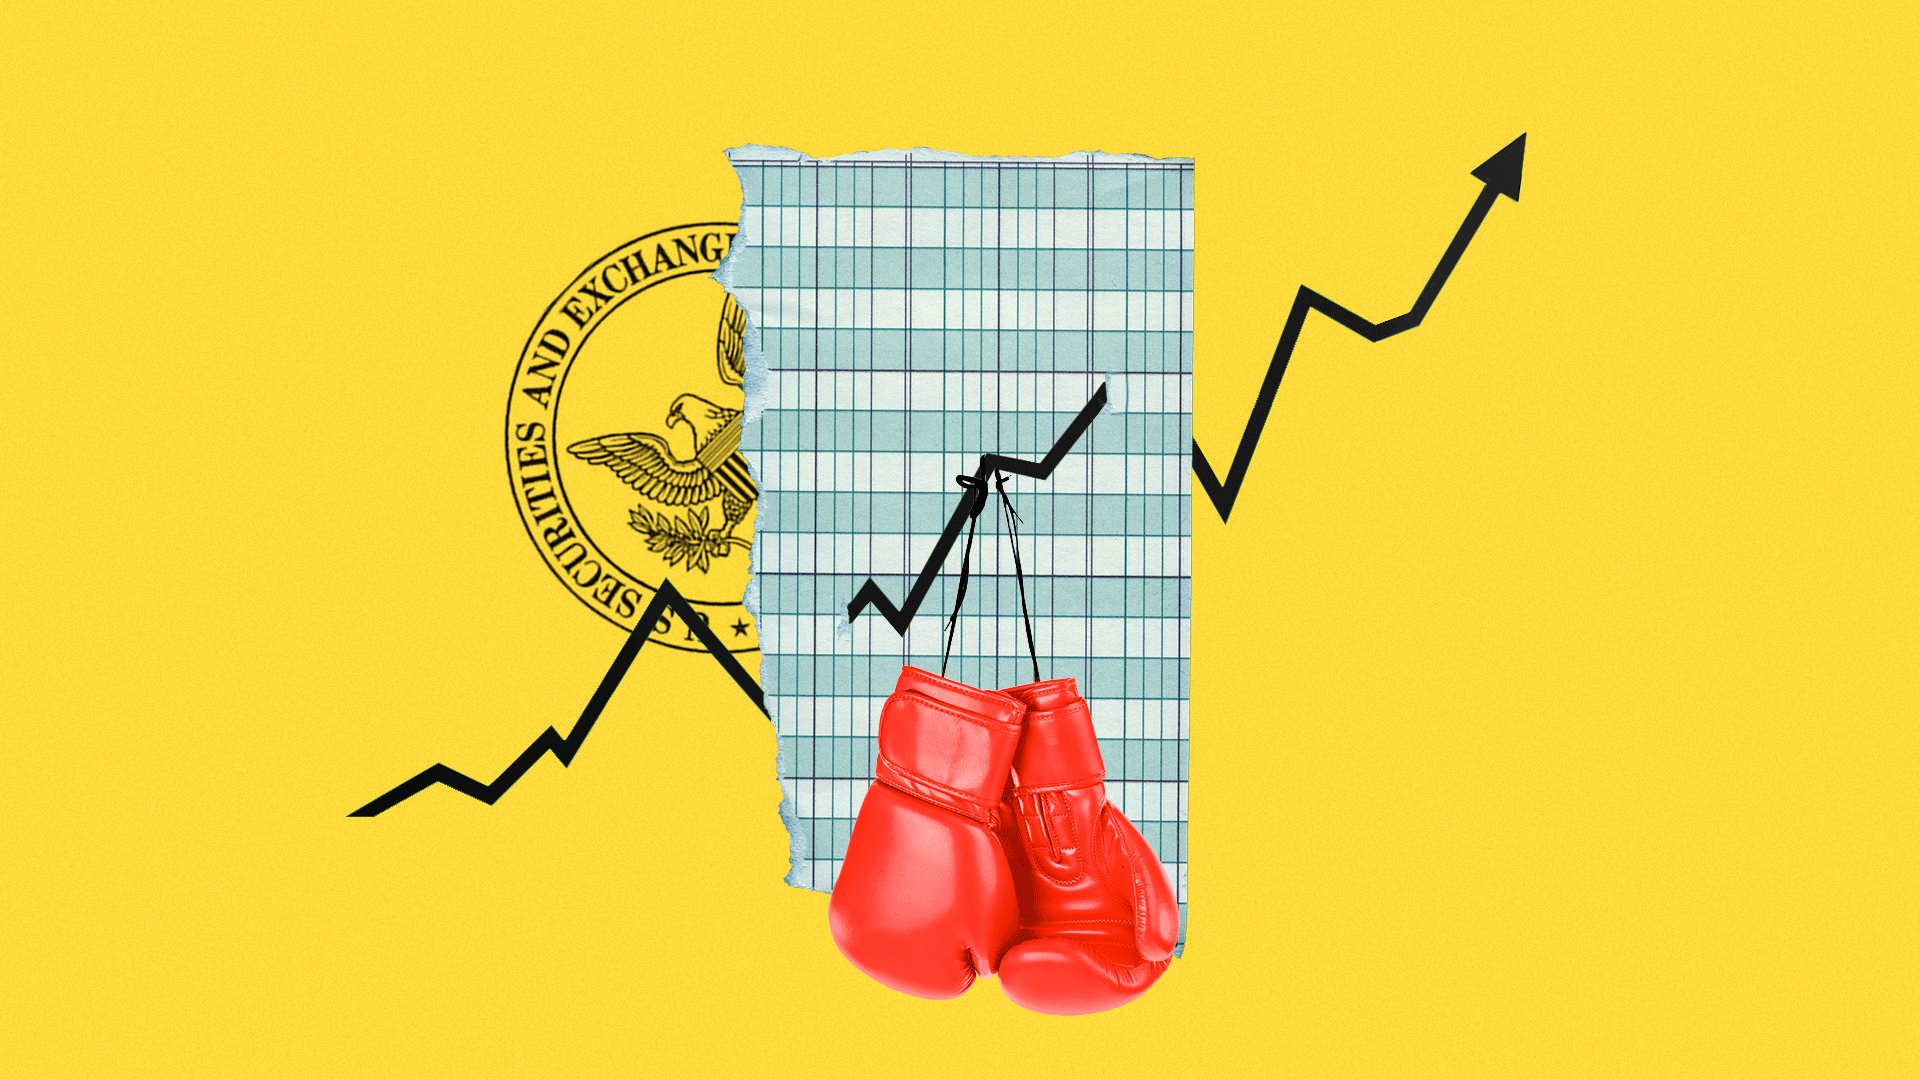 In this illustration, two red boxing gloves hang in front of a rising arrow stylized as a stock market graph. In the background, the logo of the SEC is visible.